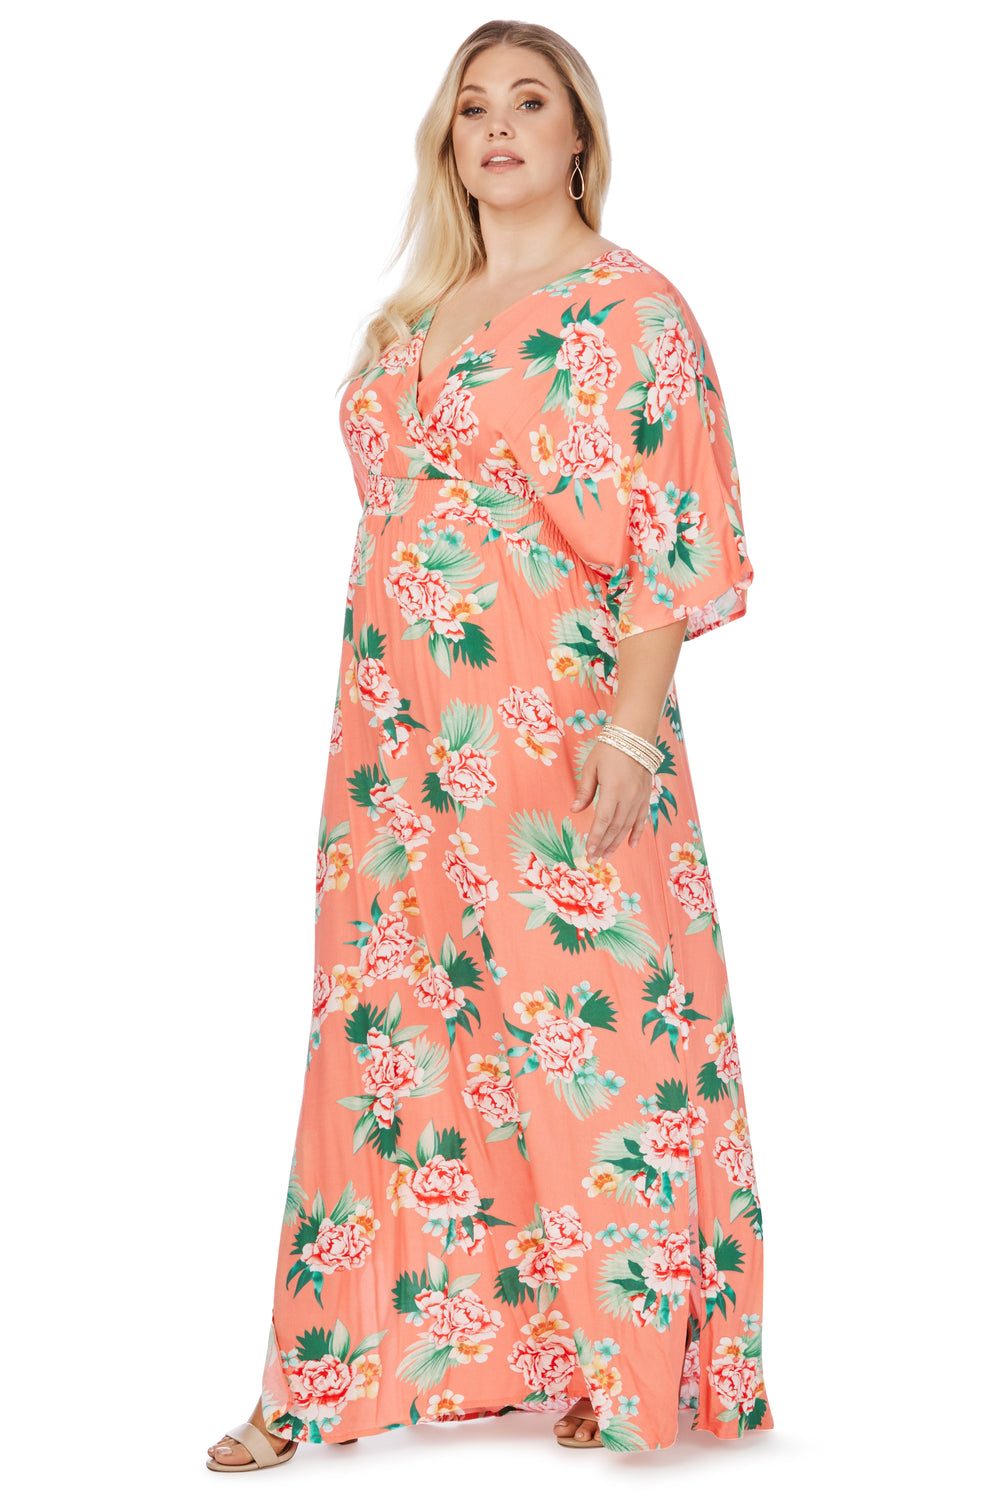 New // BEME 'Elbow Sleeve Kimono Shirred Waist Maxi Dress' // Size 18